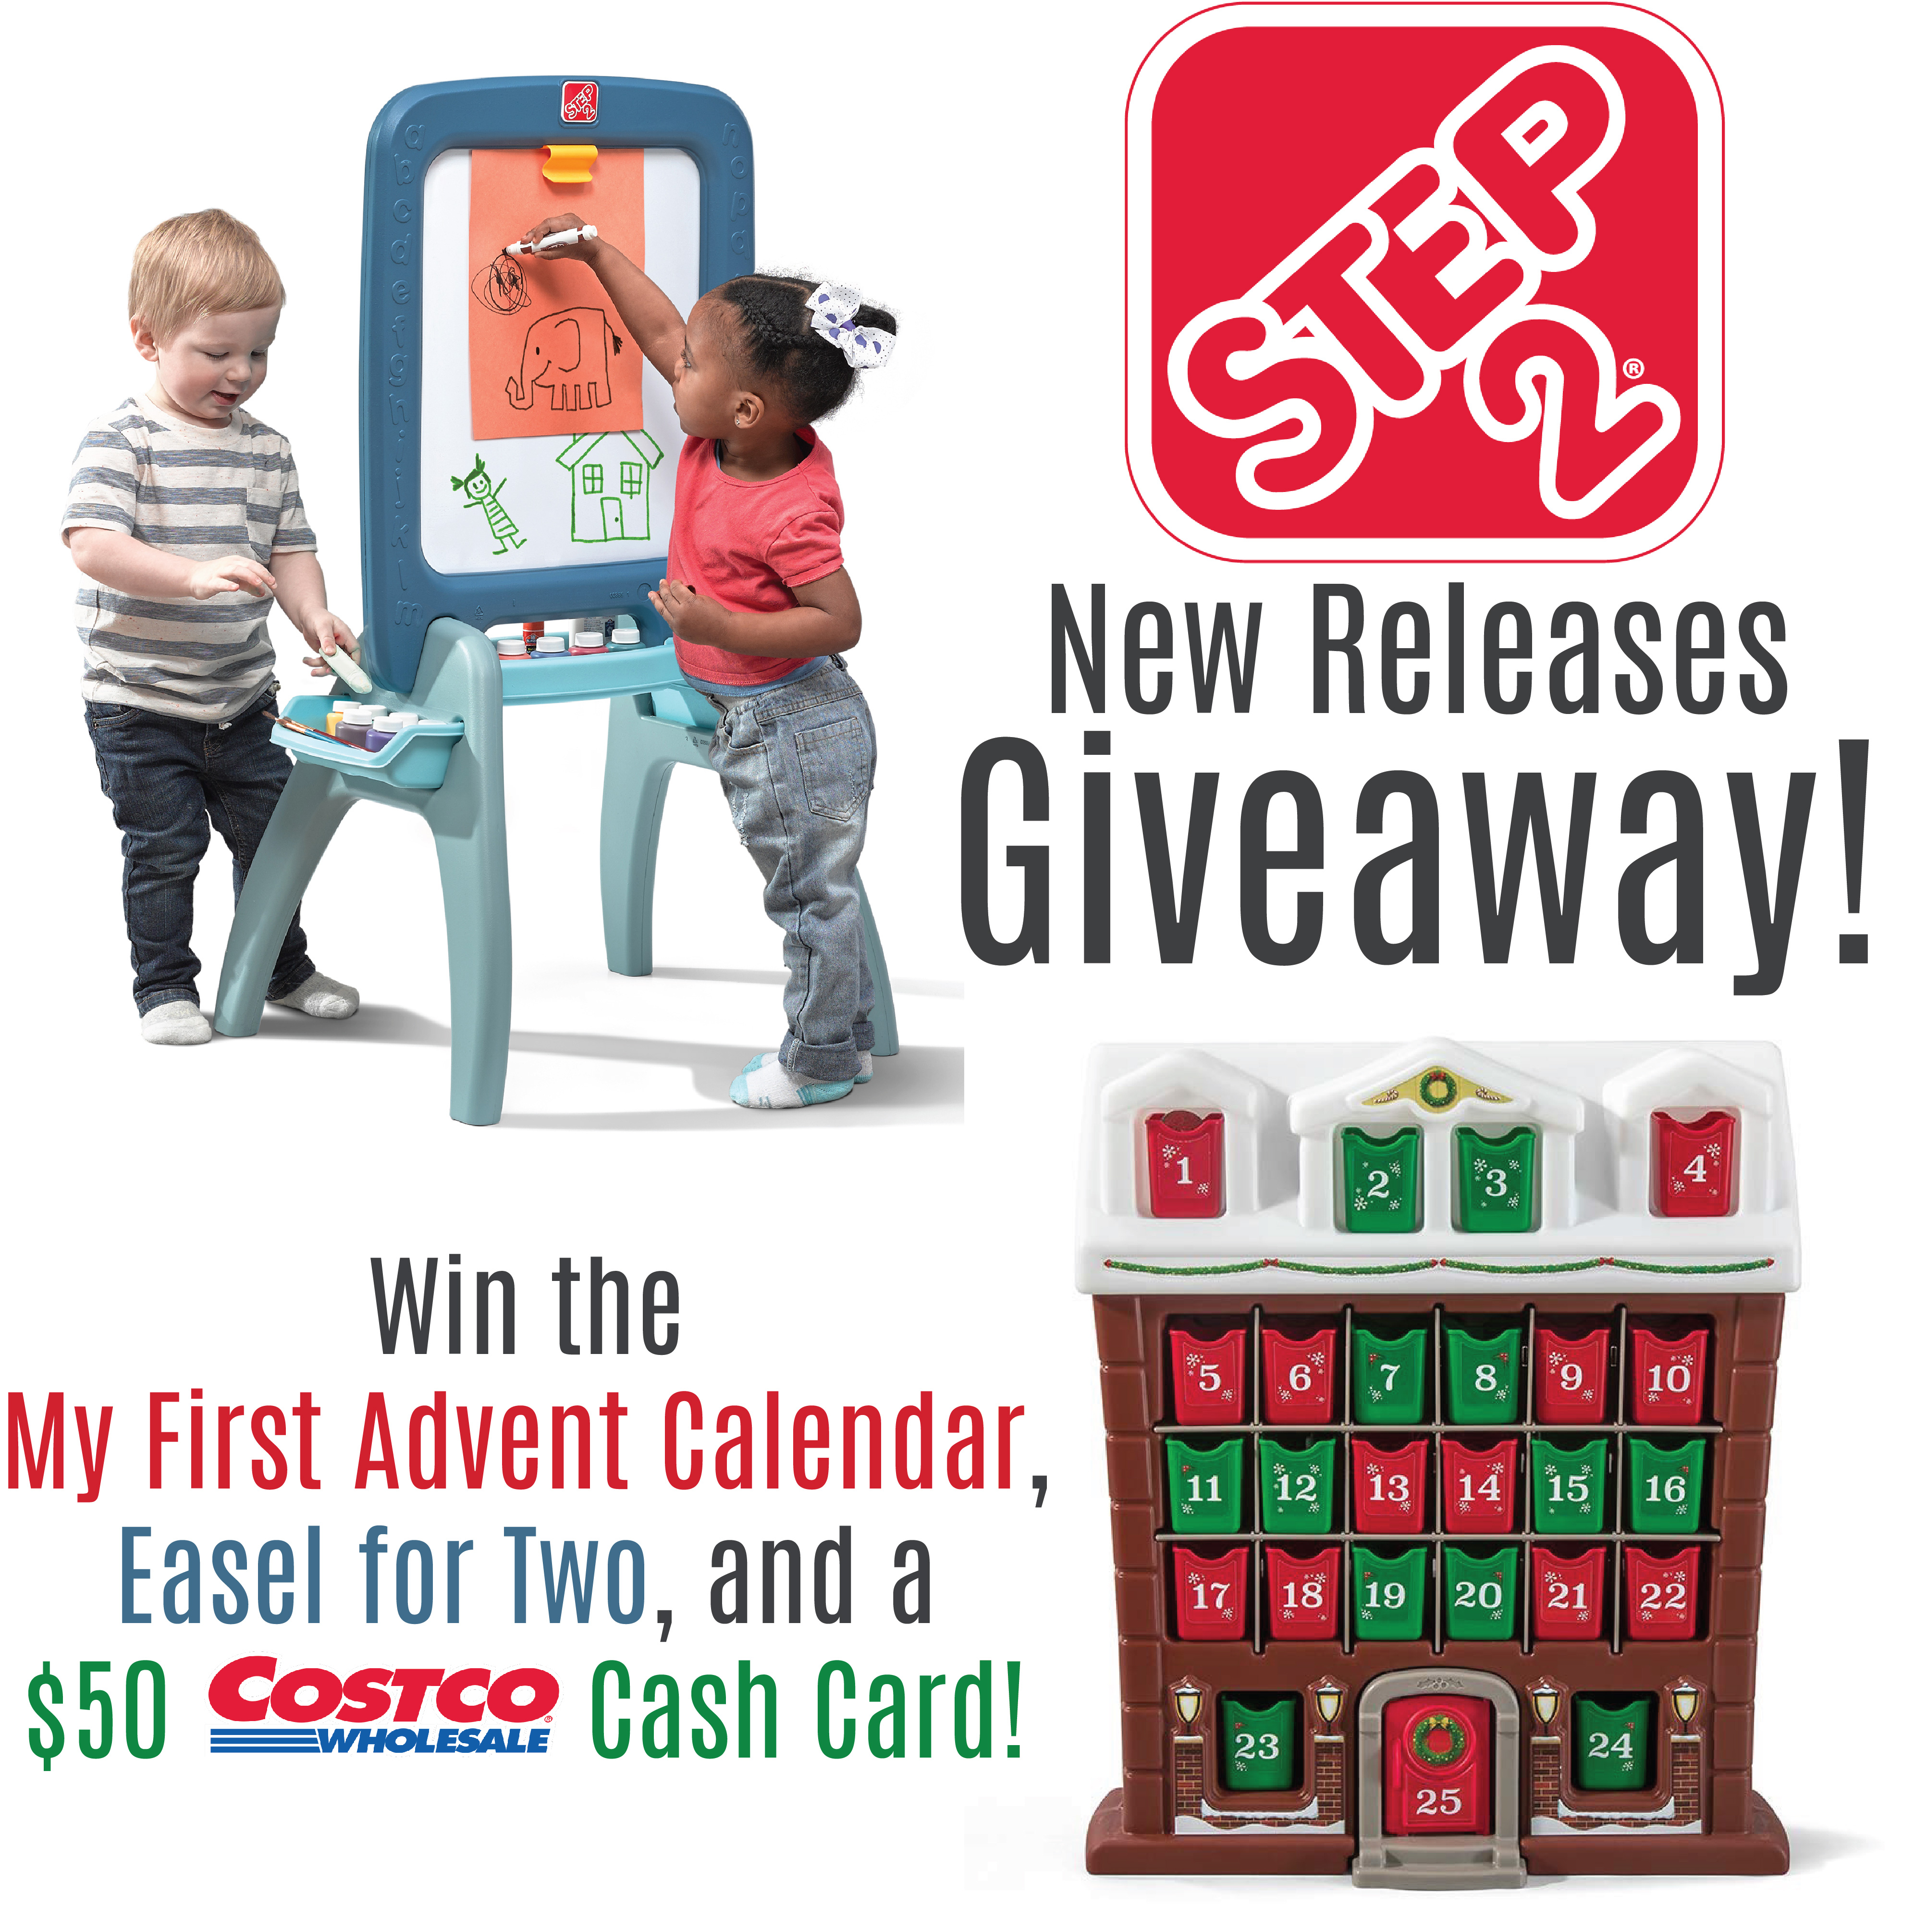 Costco $50 Gift Card + Step2 New Releases Giveaway! | The Homespun Chics